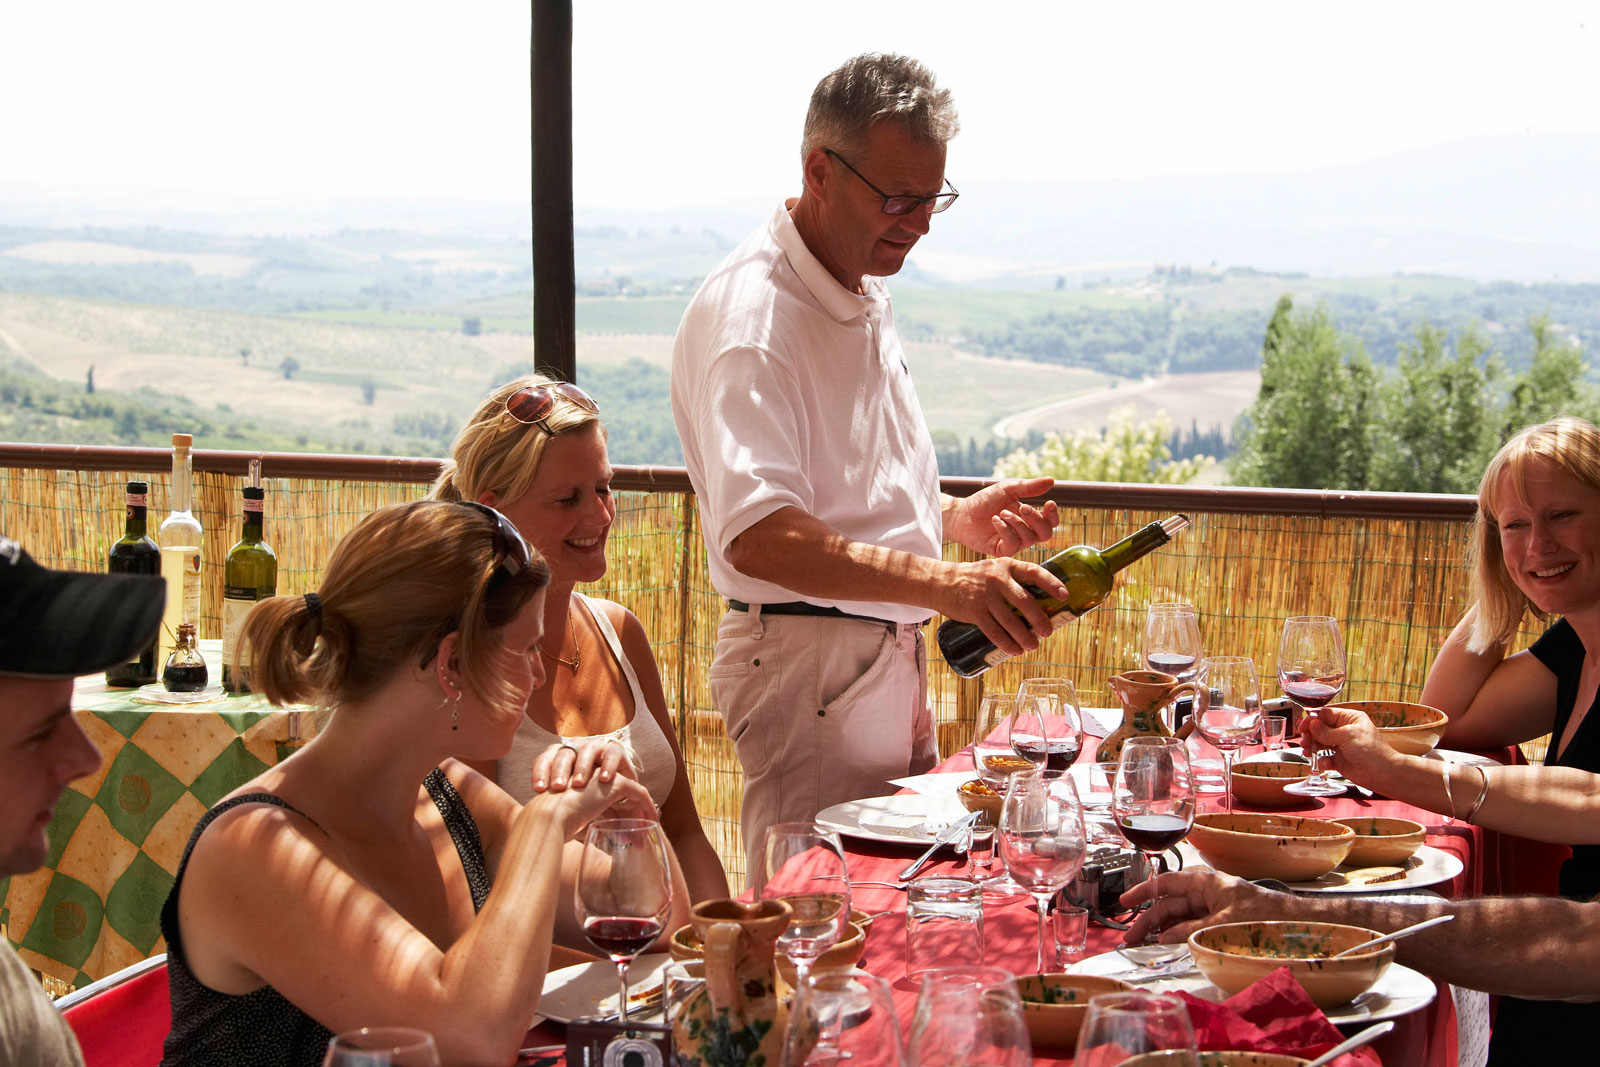 Lunch in organic Farm Private Tour: Food and Wine Experience in Tuscany